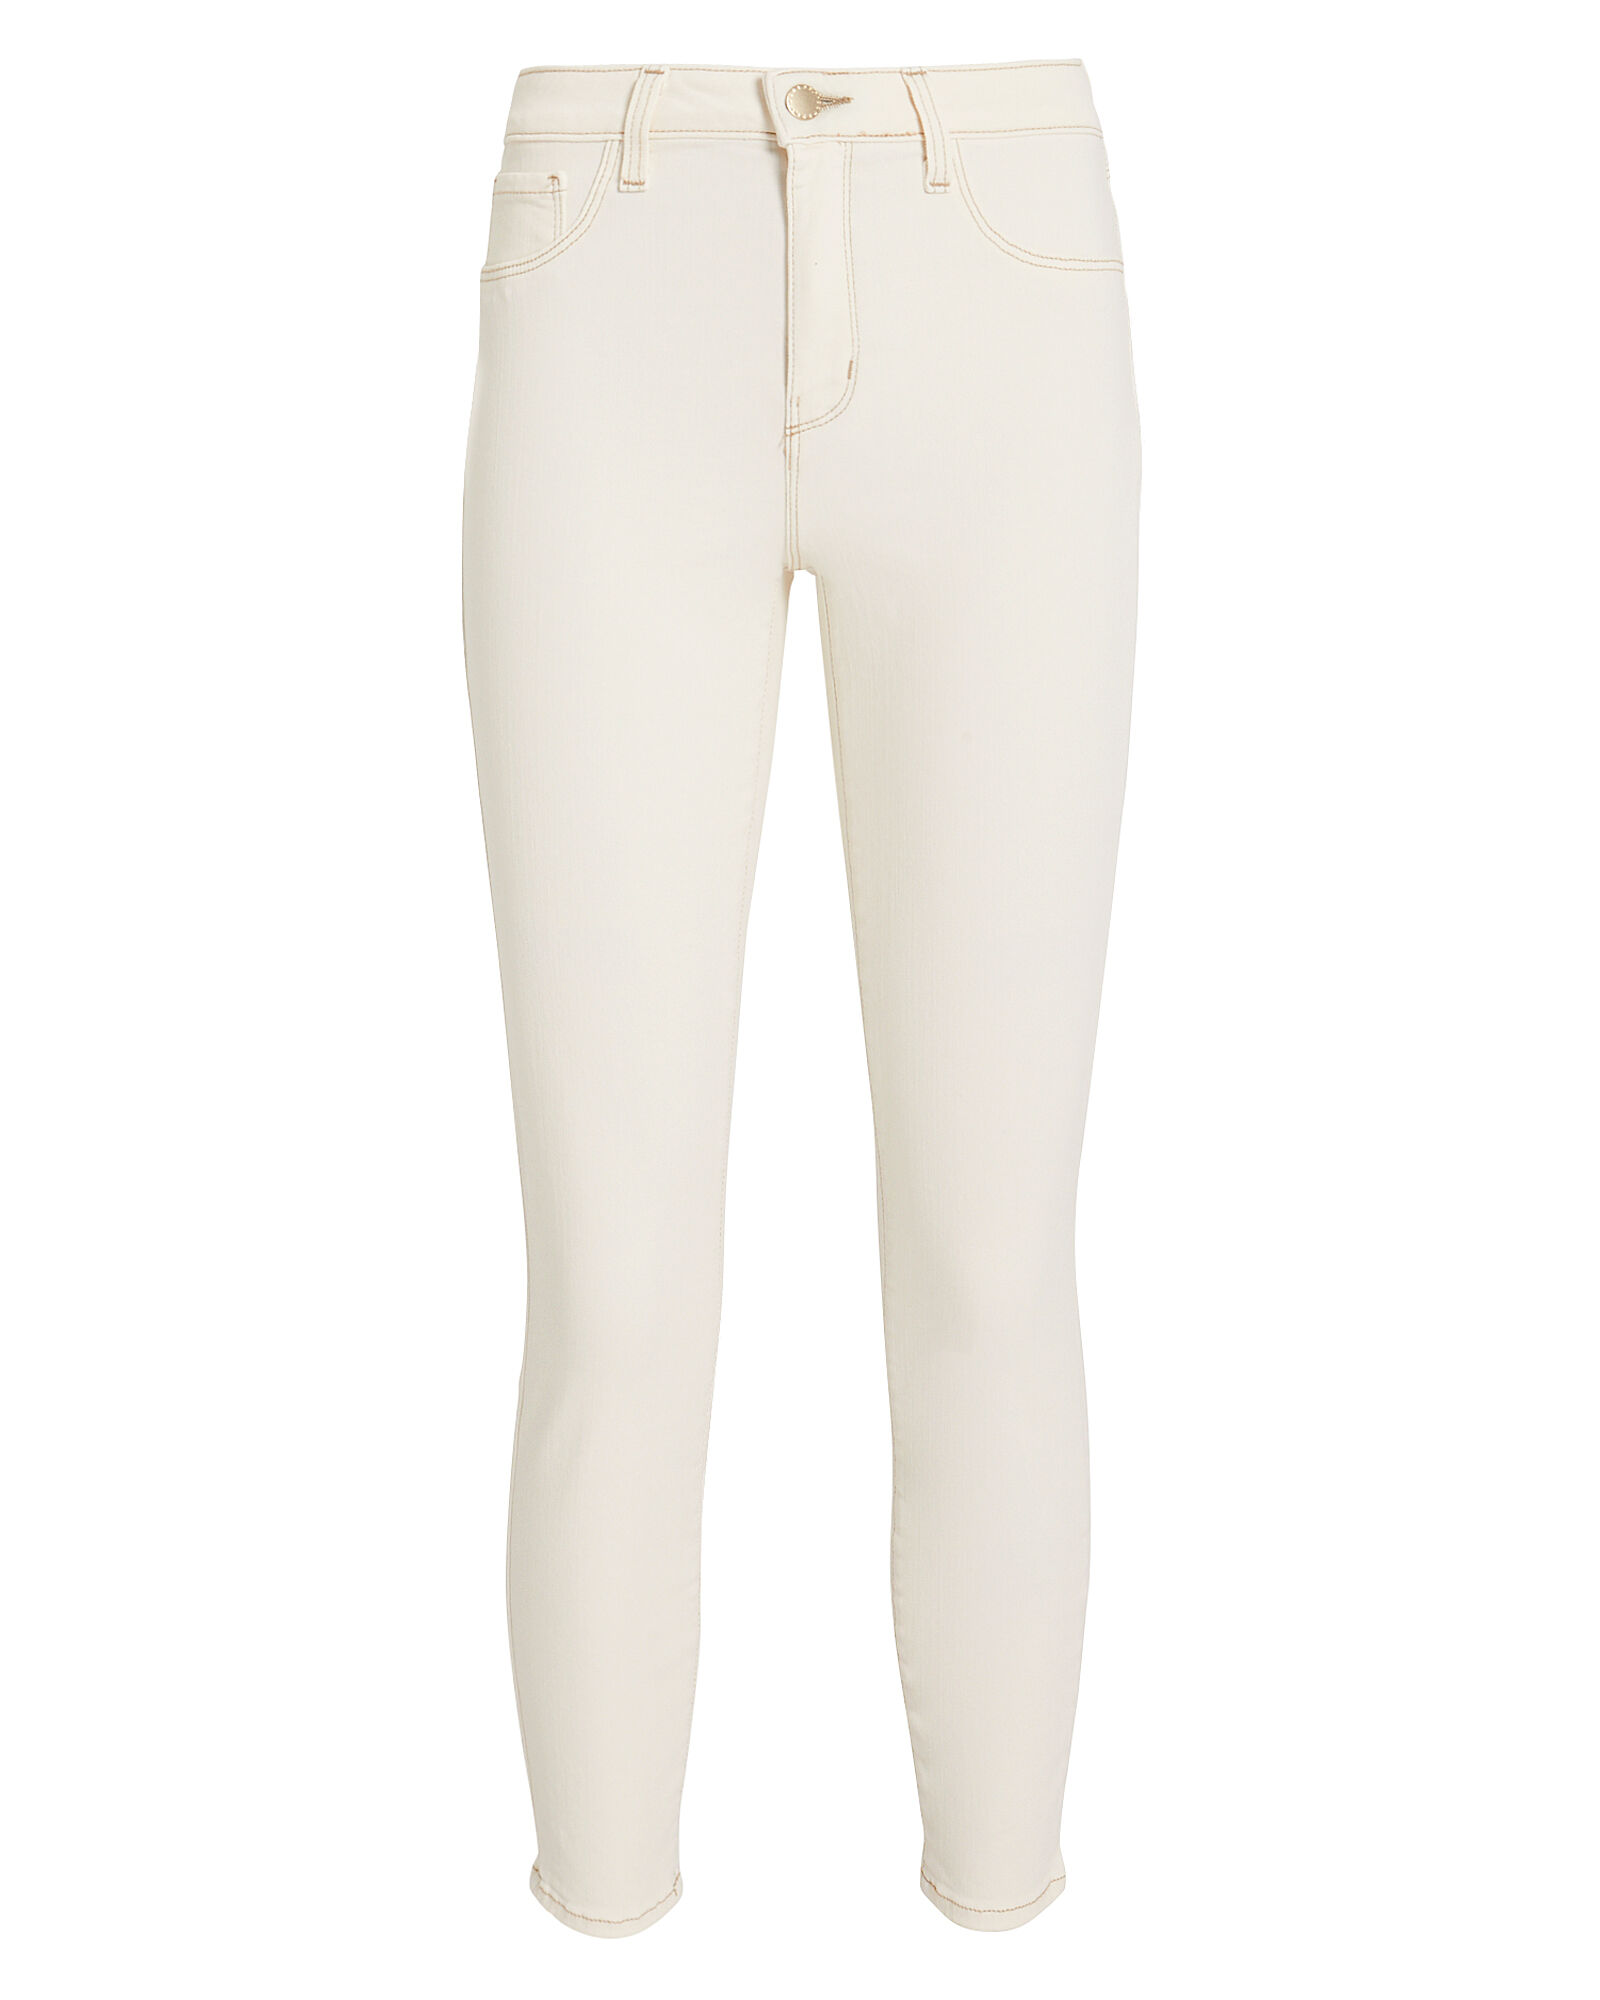 Margot High-Rise Skinny Jeans, BEIGE, hi-res